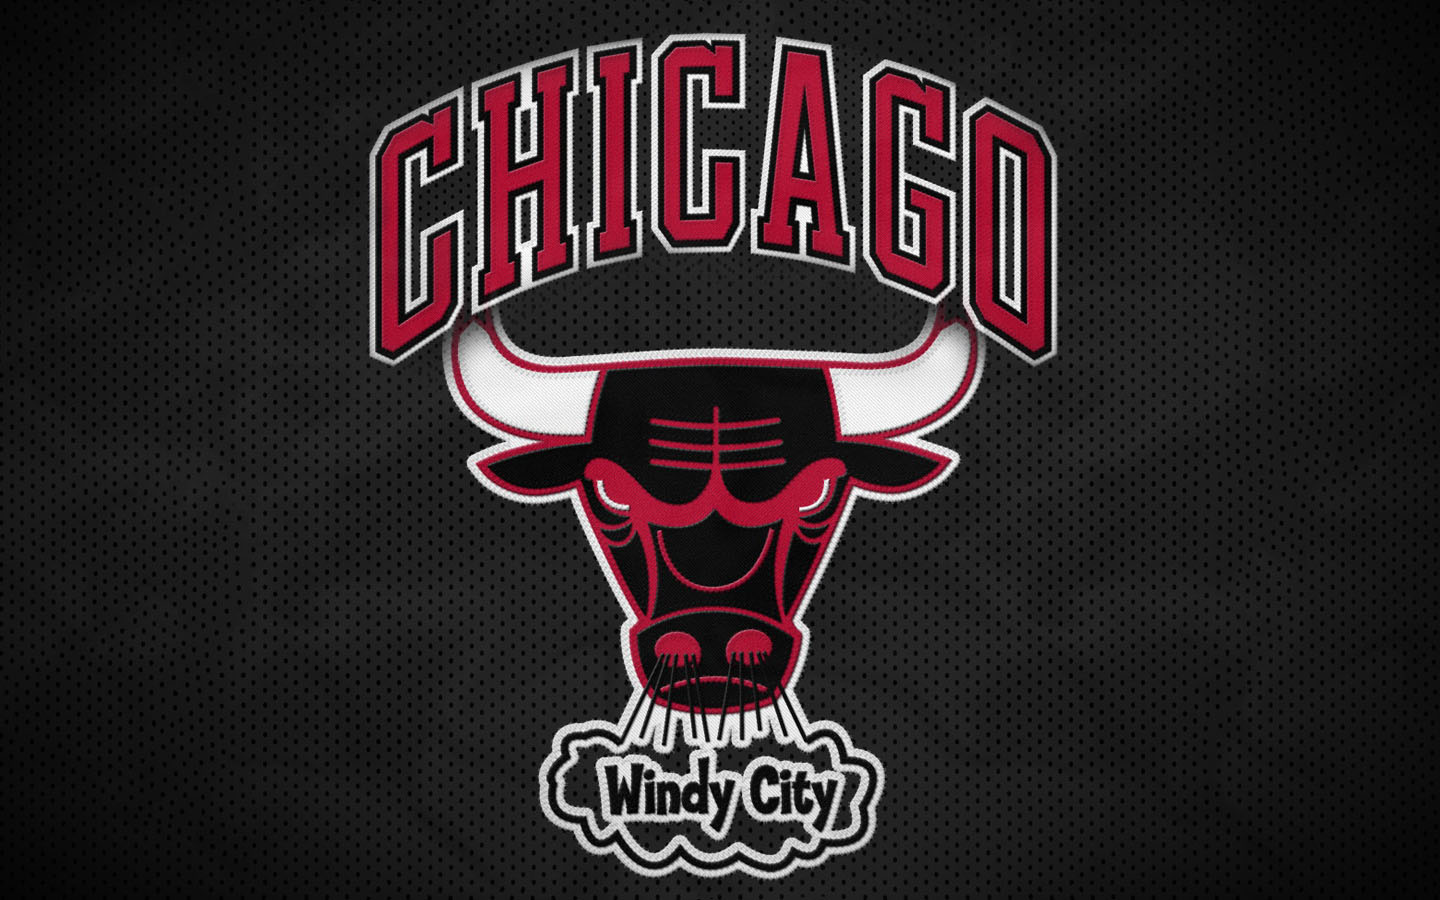 1000+ images about chicago bulls on Pinterest | Logos, Distance